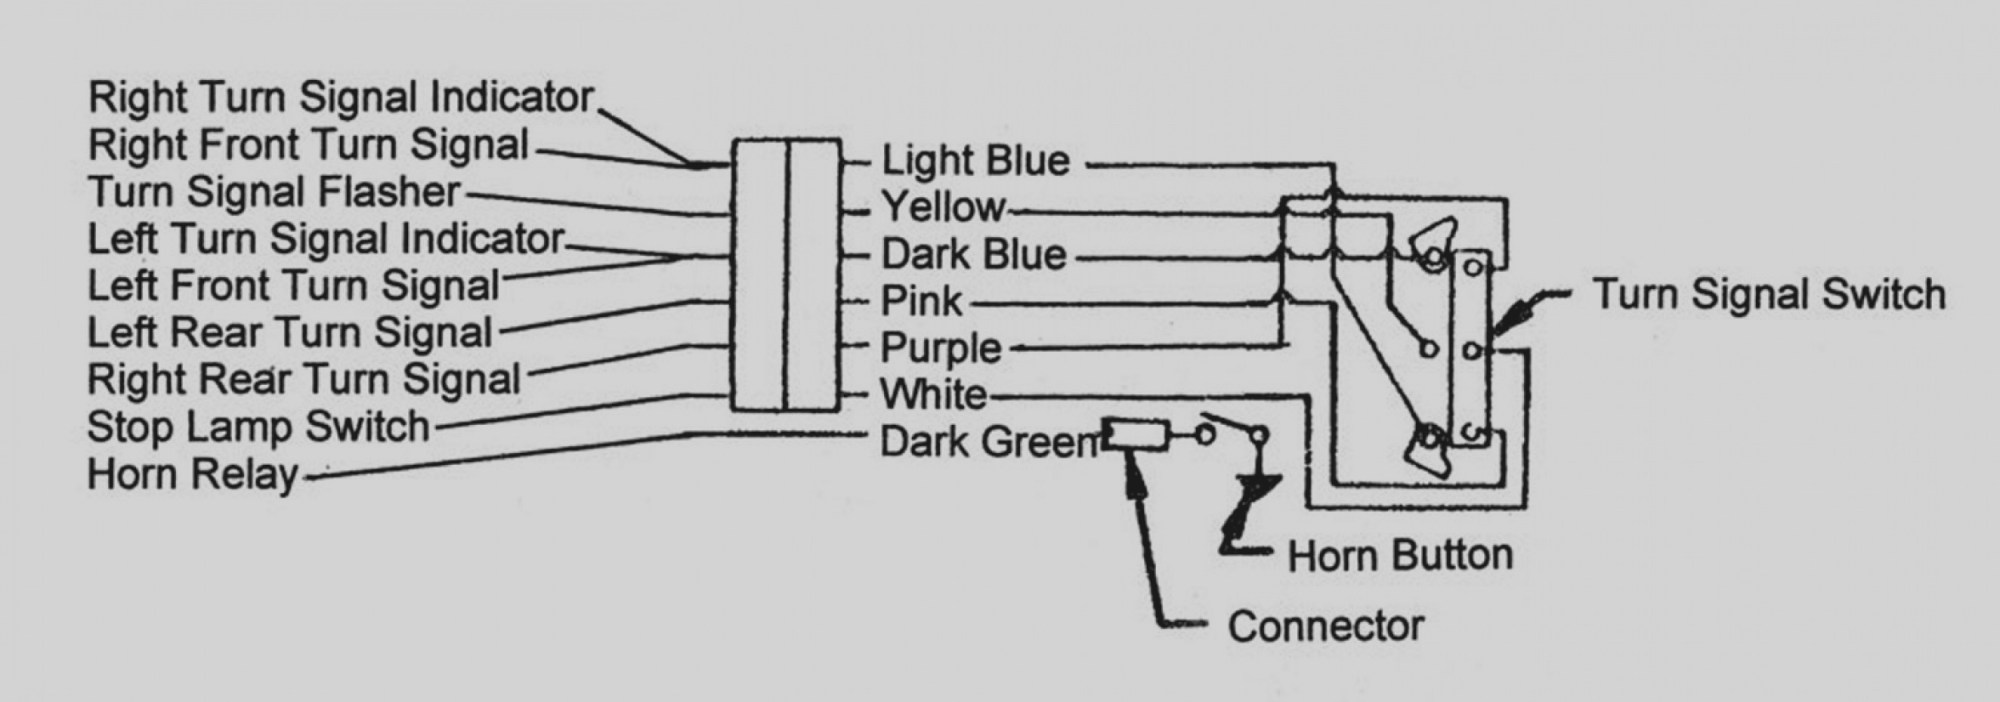 hight resolution of 1964 chevy wiring diagram on 1957 chevy truck horn wiring diagram rh 45 77 100 8